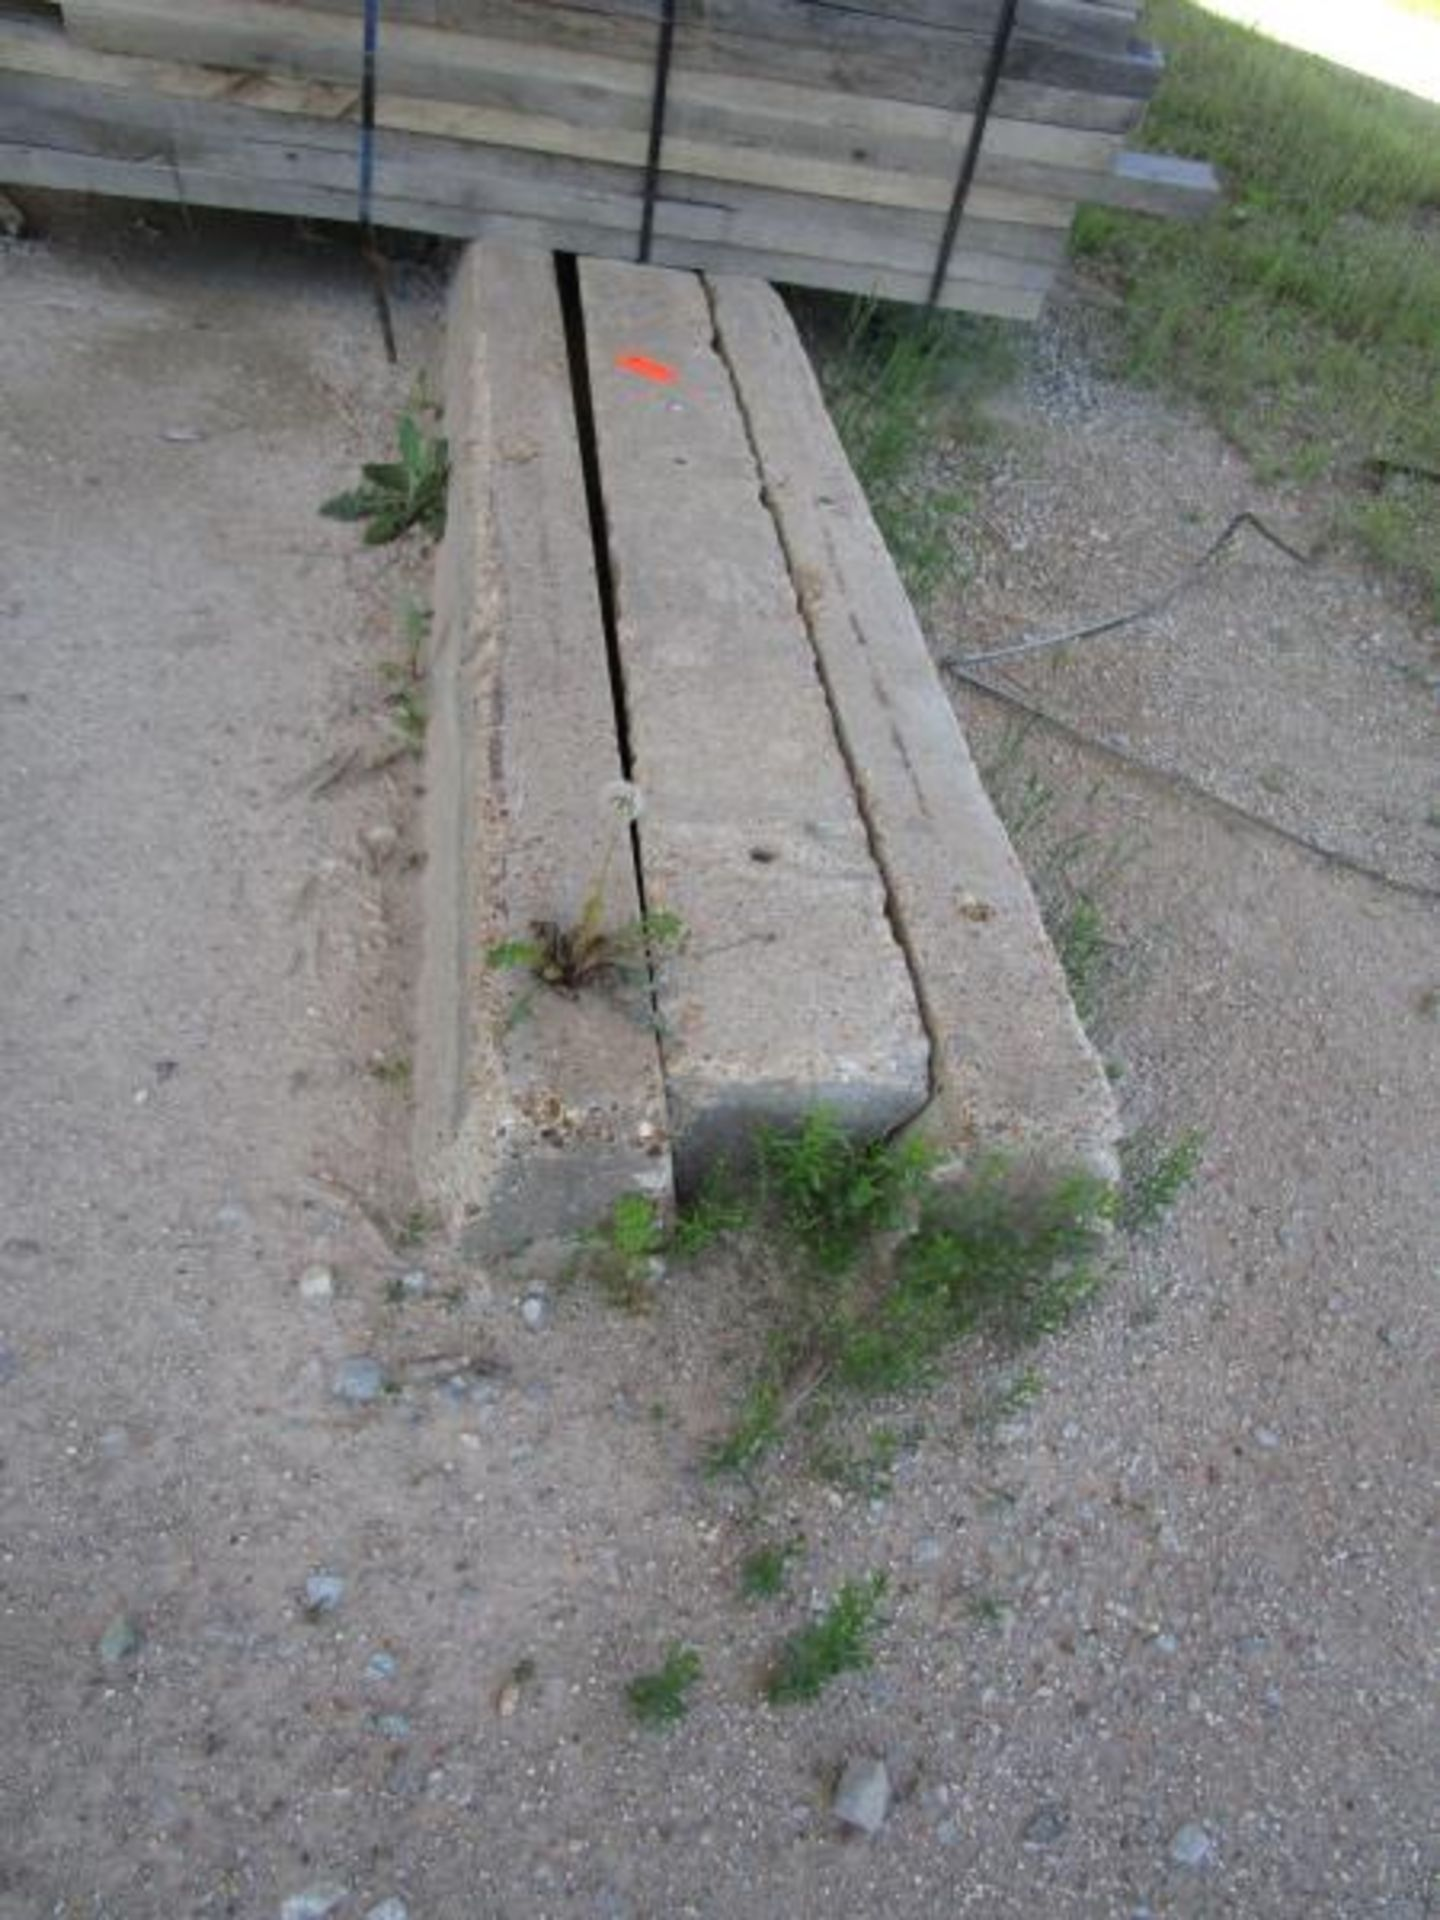 Lot 6 - Approximately 30 Concrete Curbs